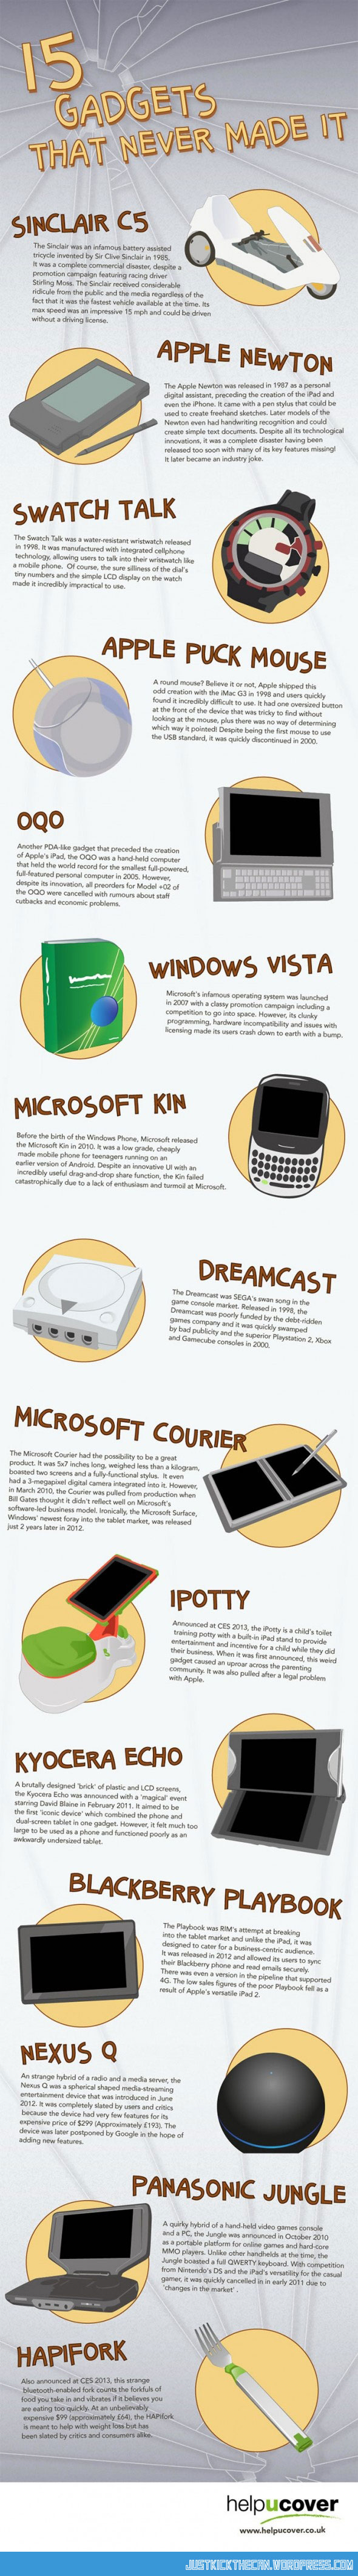 cool-infographic-gadgets-never-made